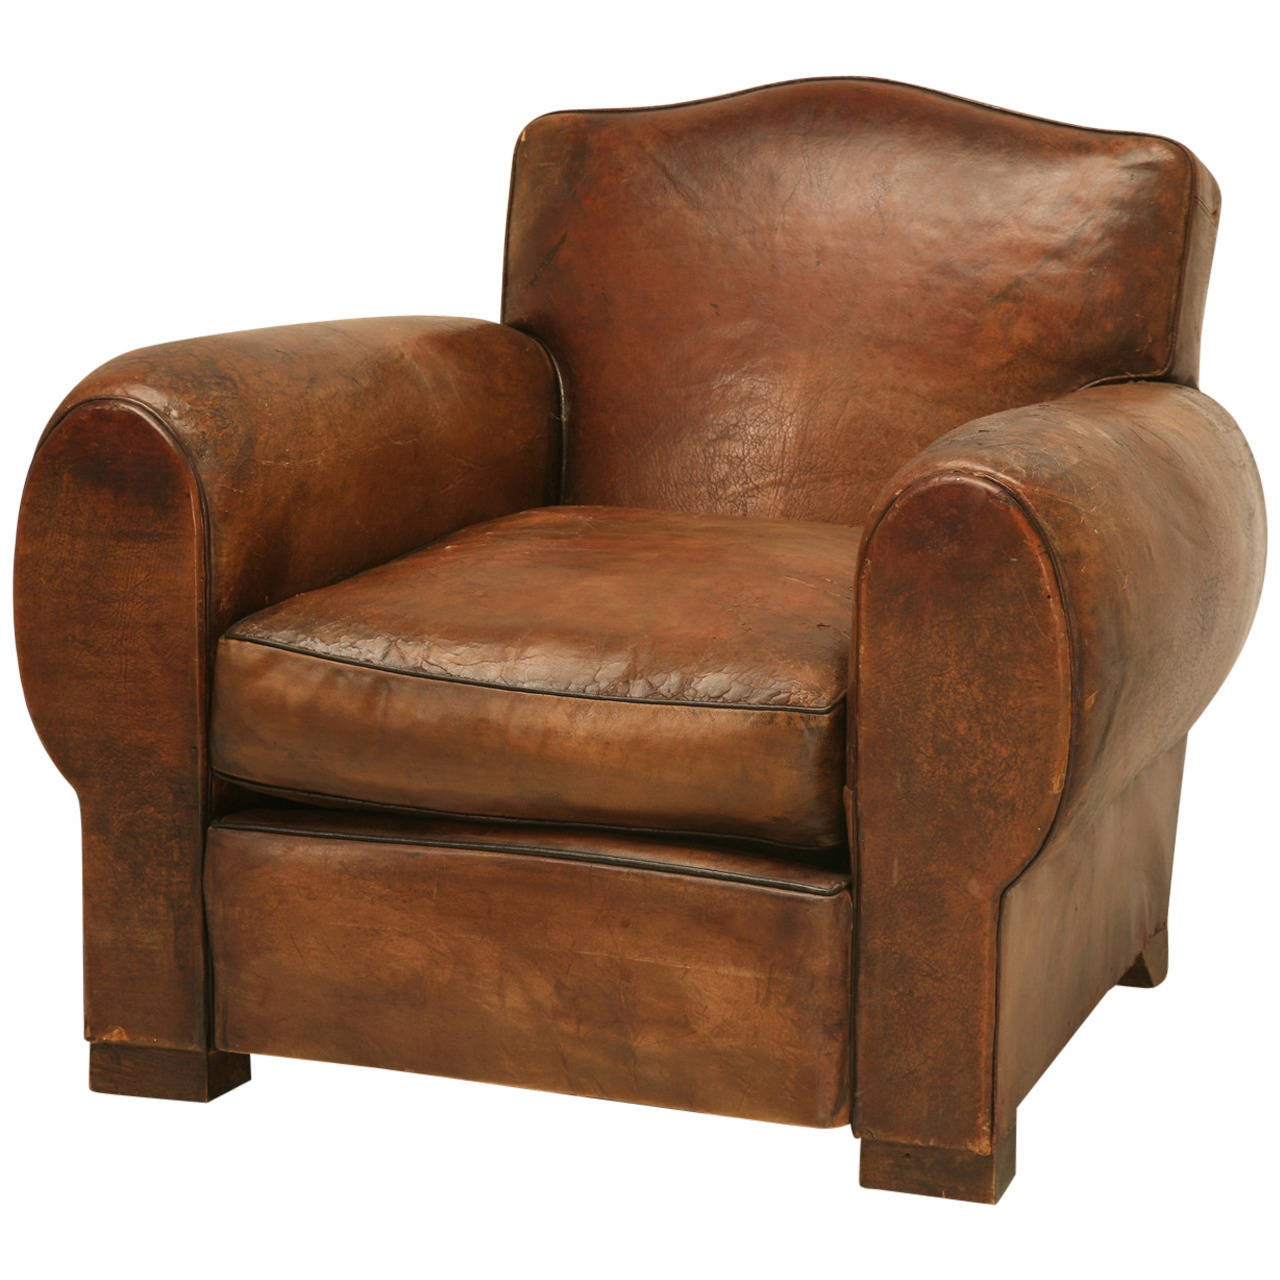 C1930's French Leather Club Chair For Sale